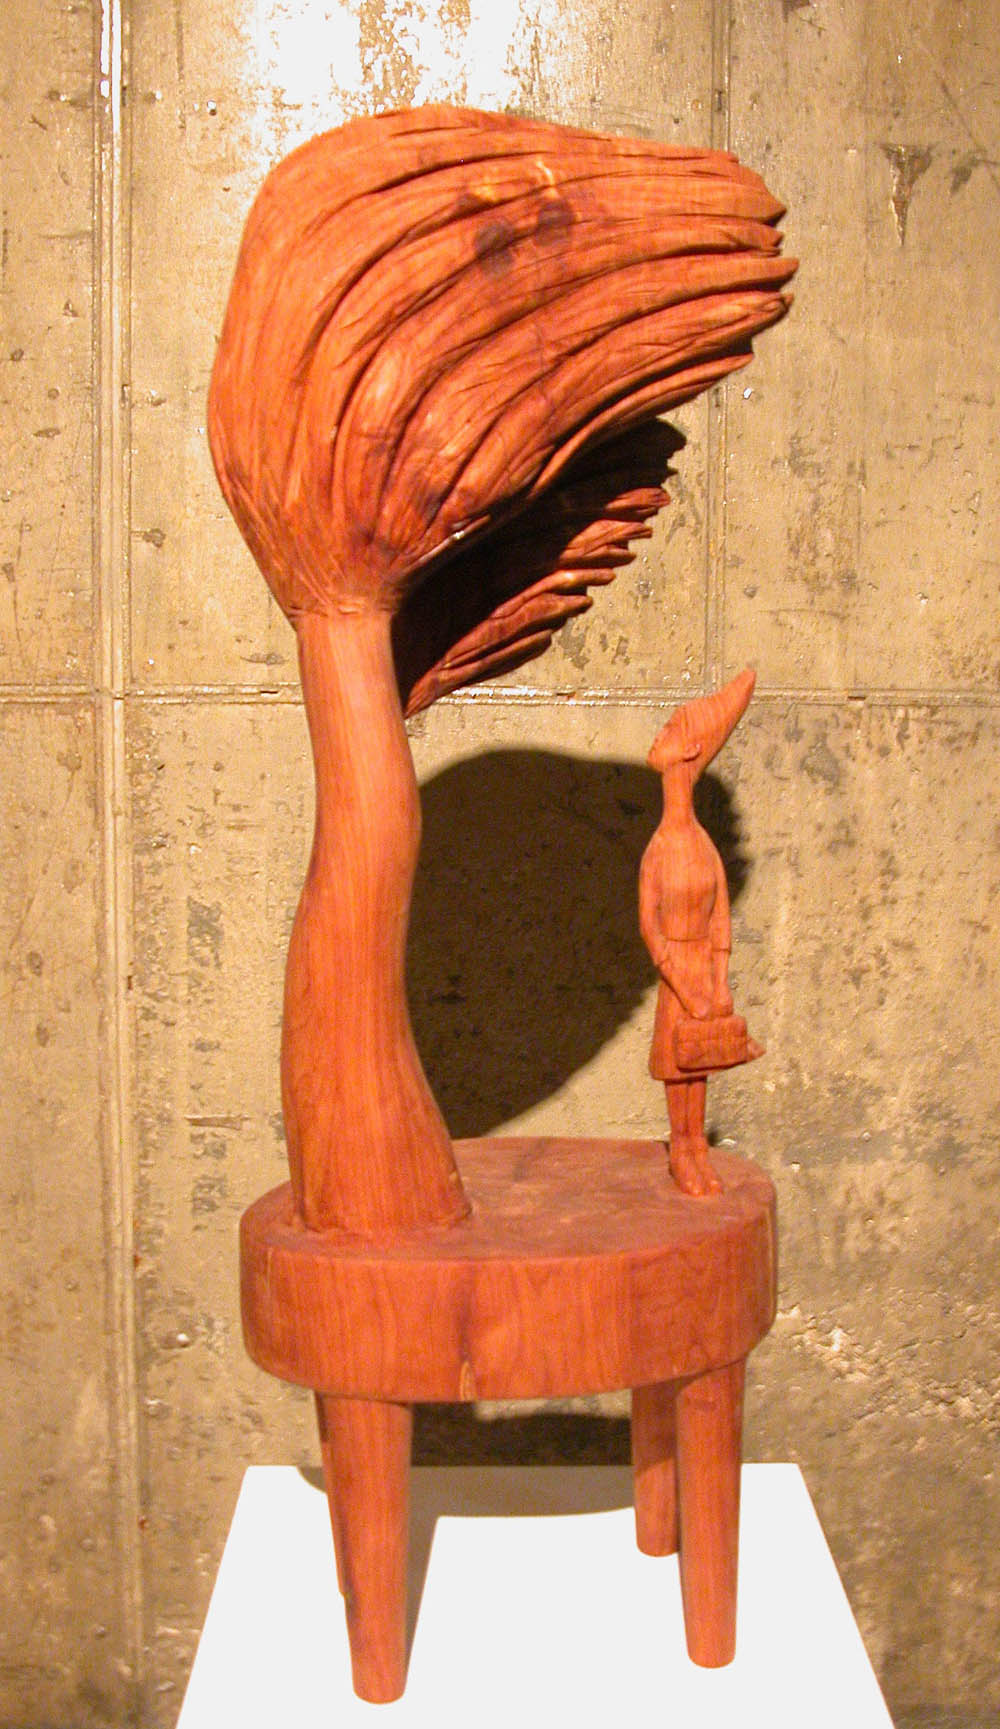 "Memories of the Andante #1.W13""L9""H35.4"".Wood.2010"